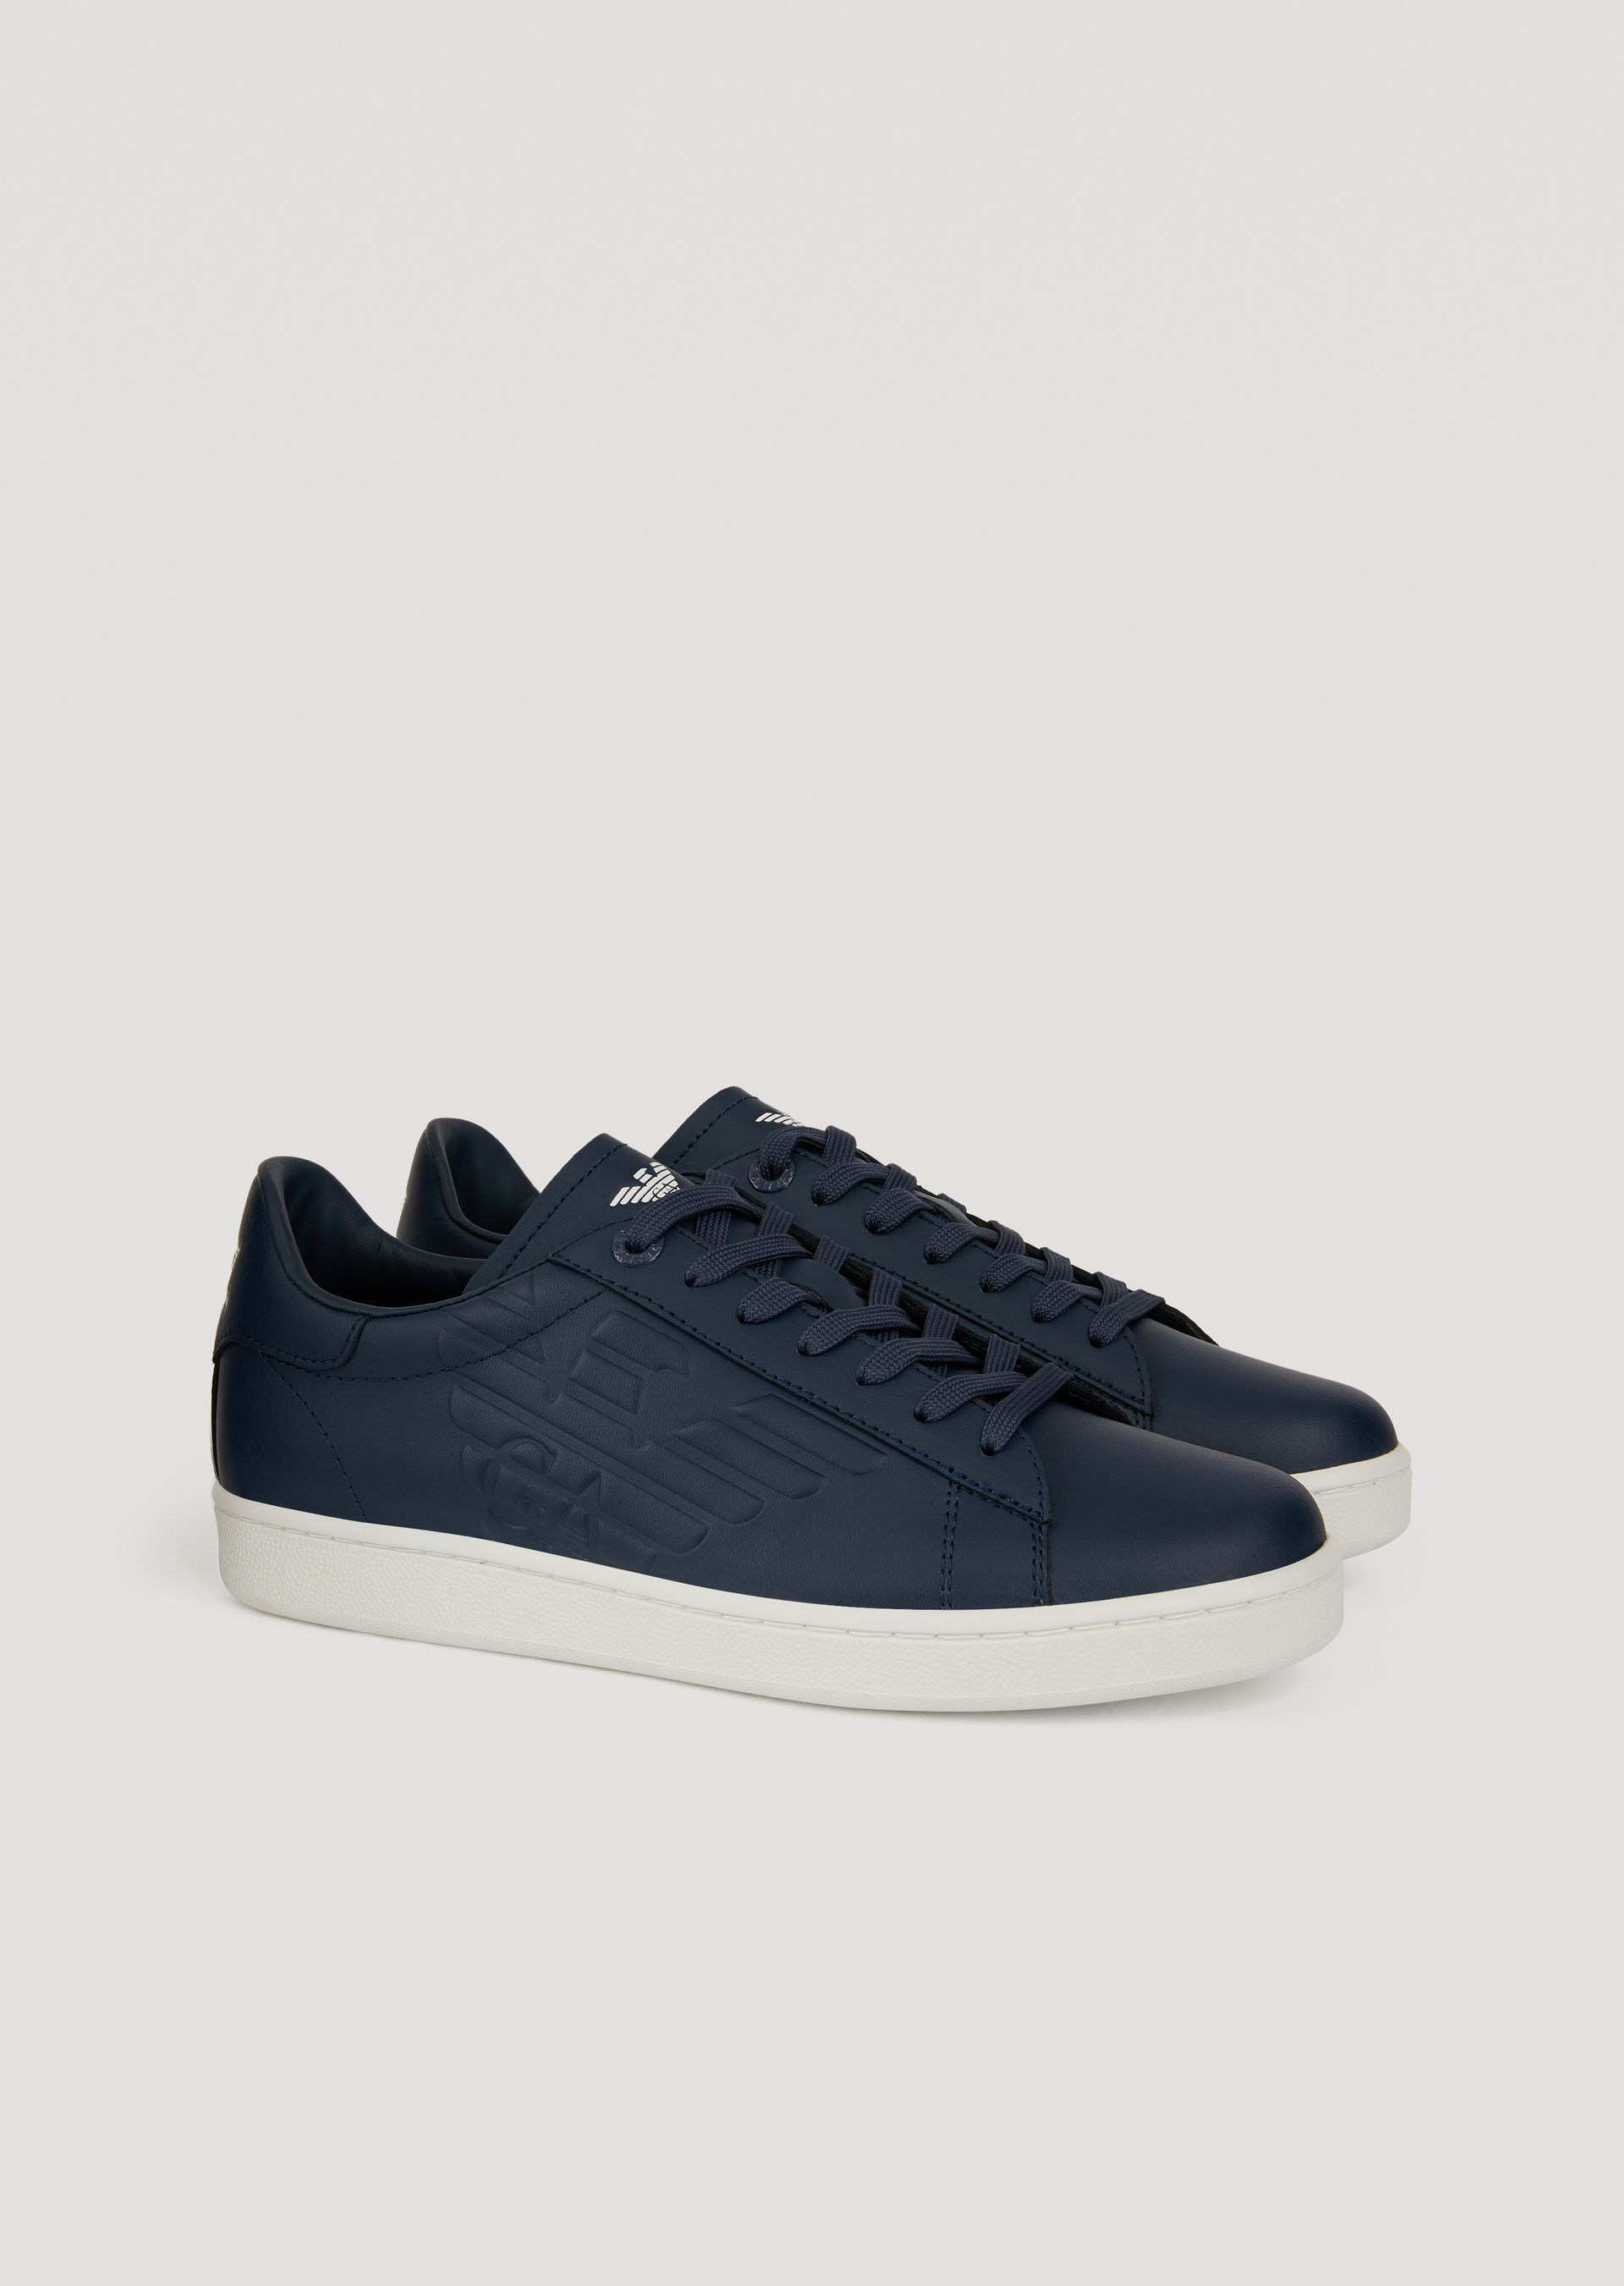 OFFICIAL STORE EMPORIO ARMANI - Chaussures - Sneakers on armani.com